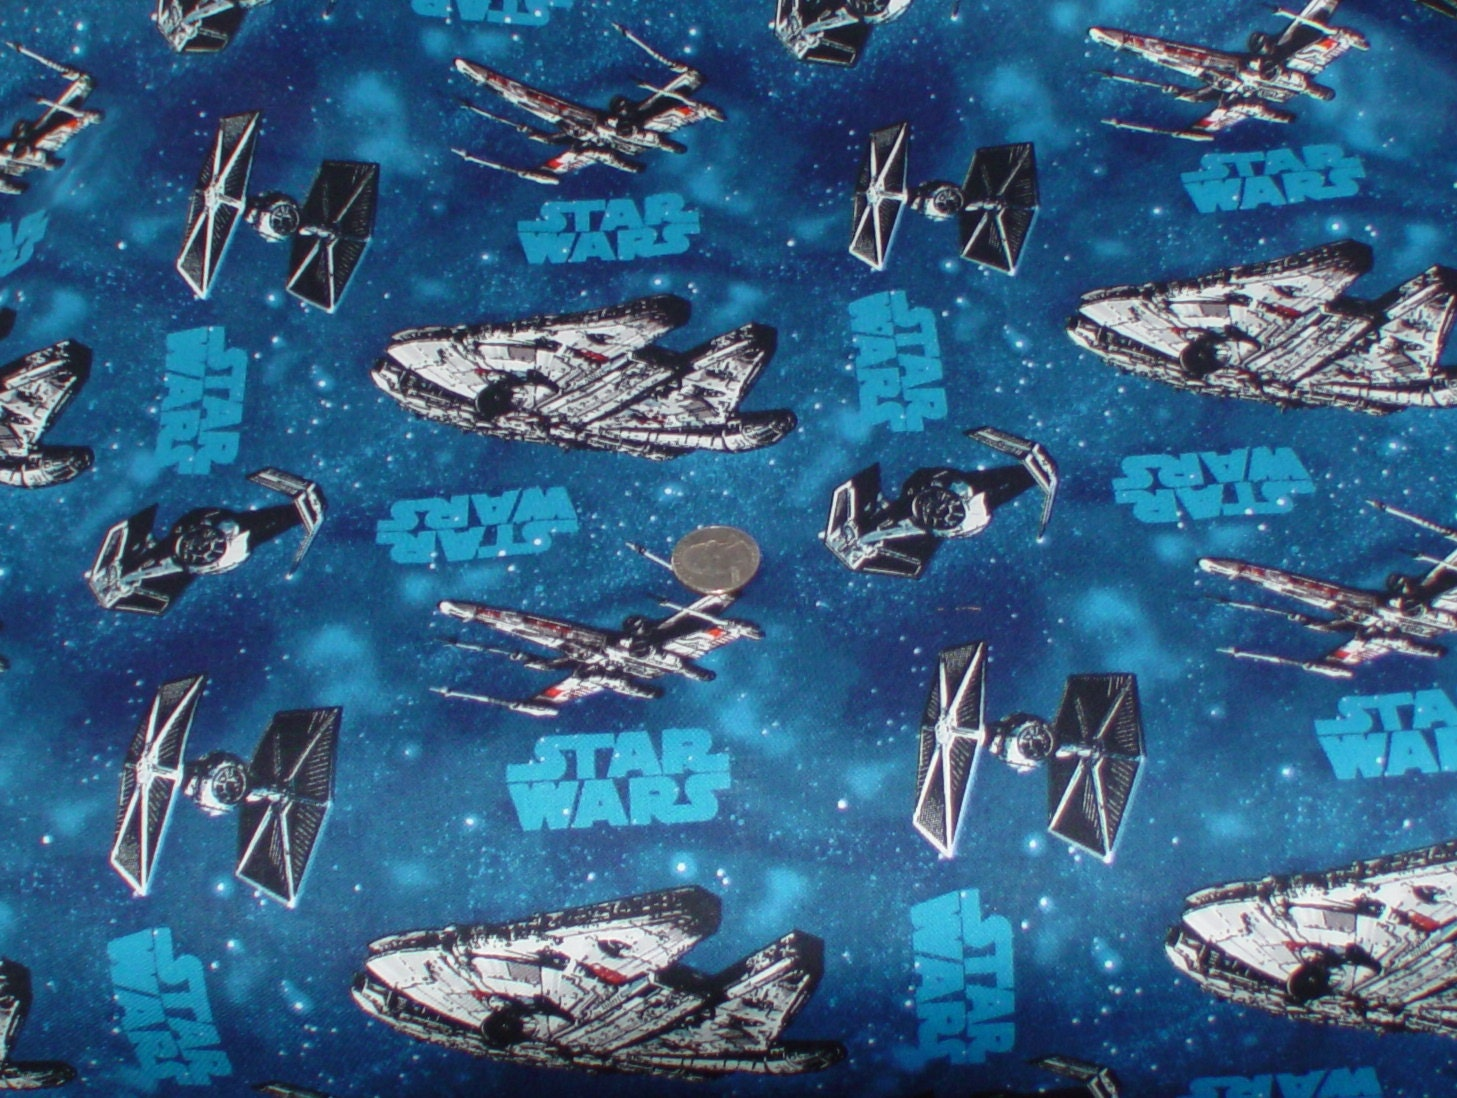 Star wars vehicles space ships fabric 2 yards from for Spaceship fabric